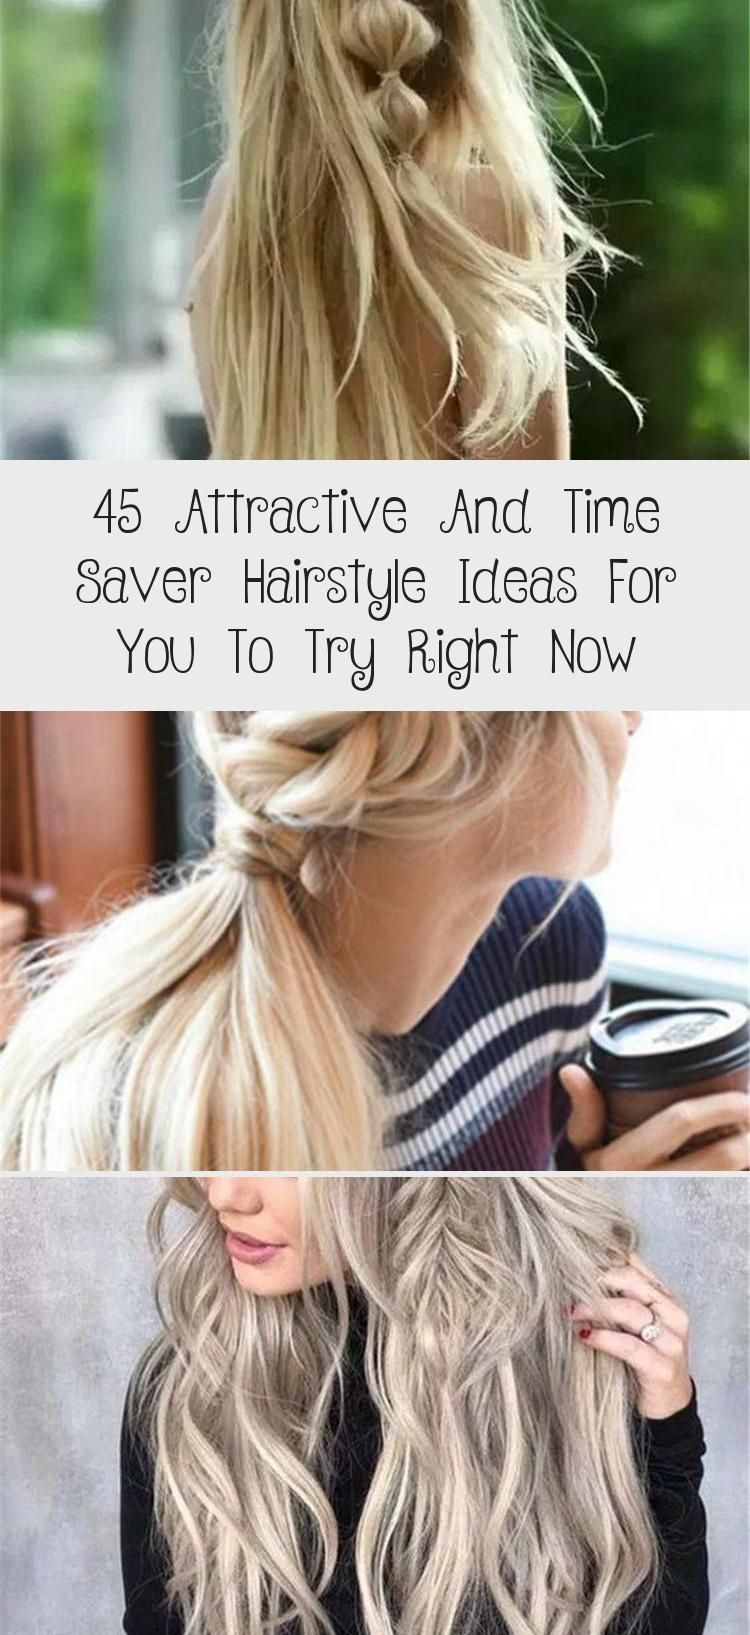 45 Attractive And Time Saver Hairstyle Ideas For You To Try Right Now – Pinokyo